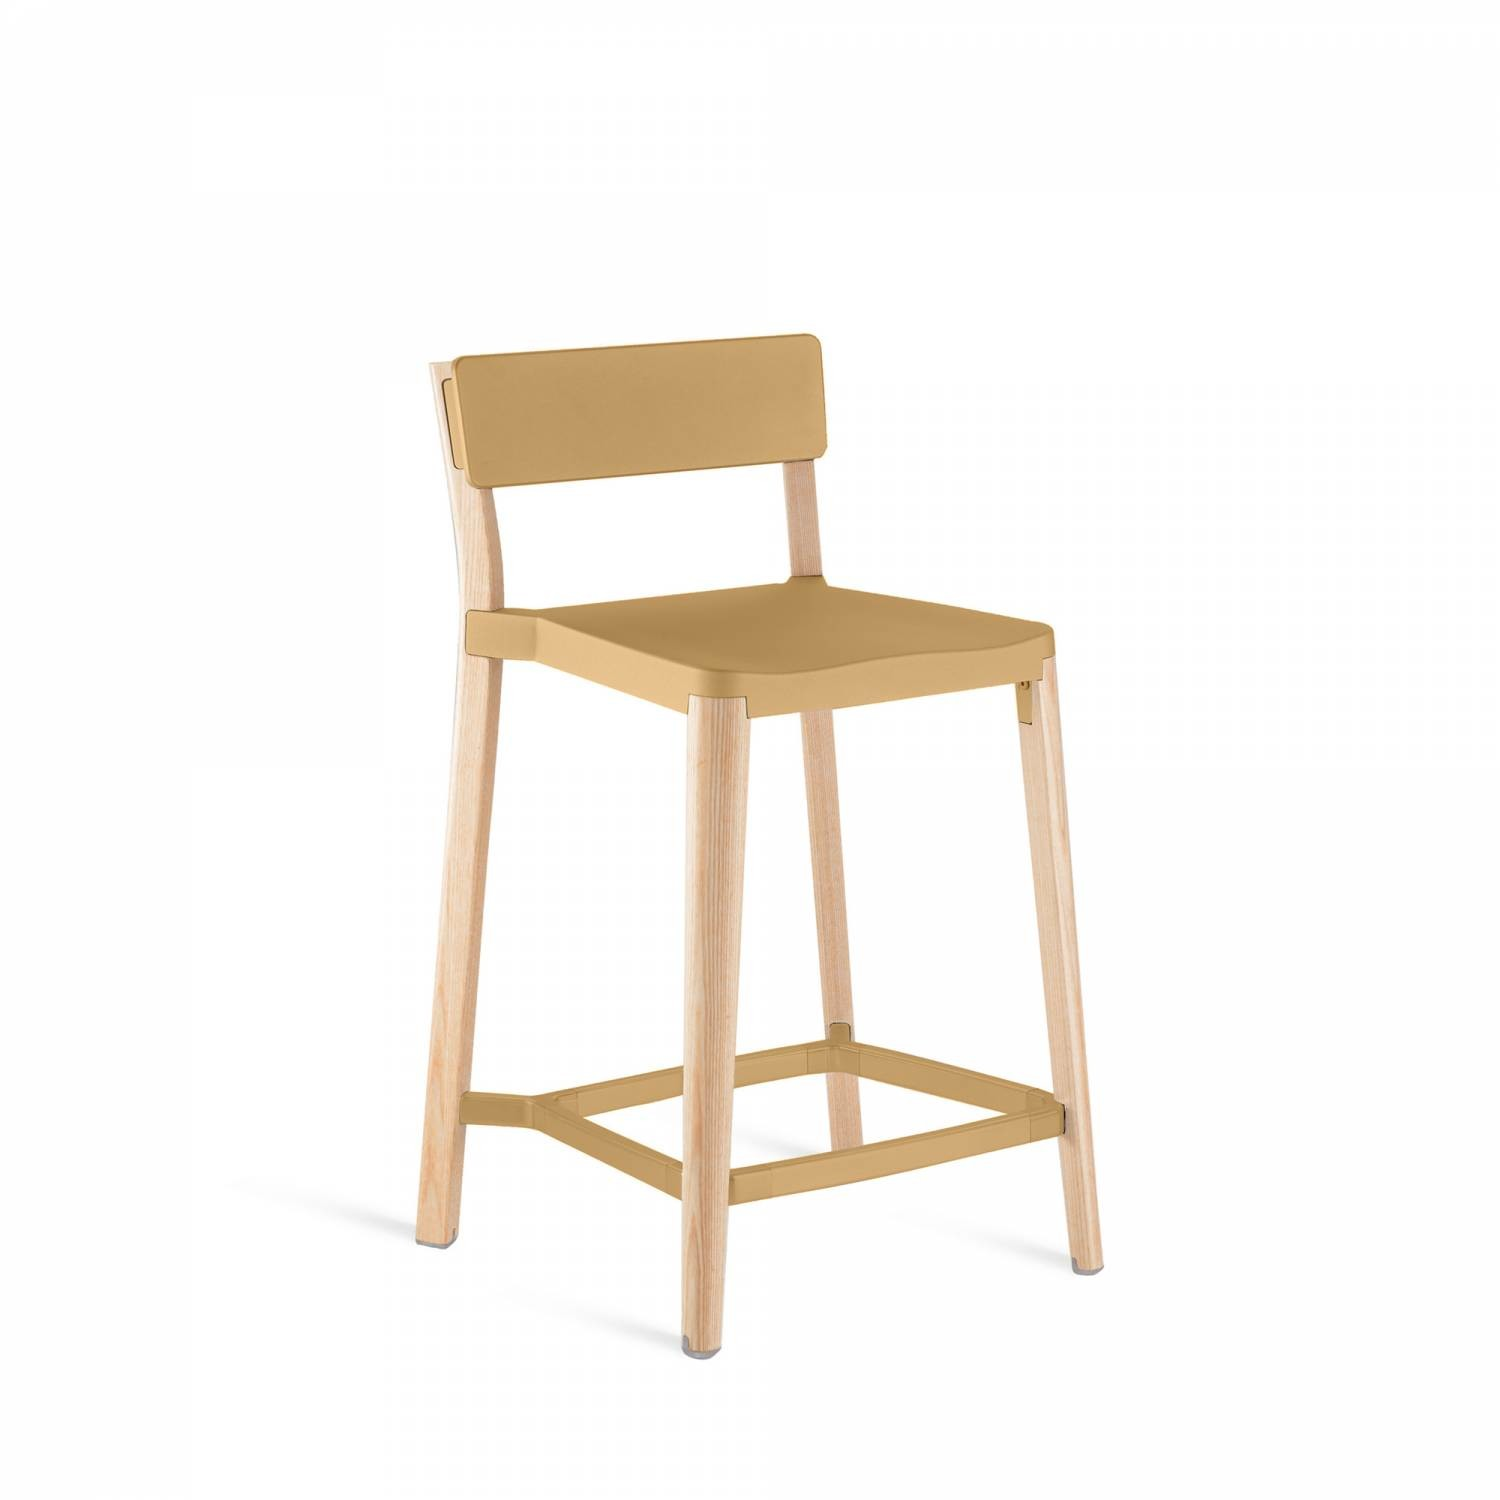 Lancaster Counter Stool Sand, Light Wood Base, Without Seat Pad, Without Back Pad